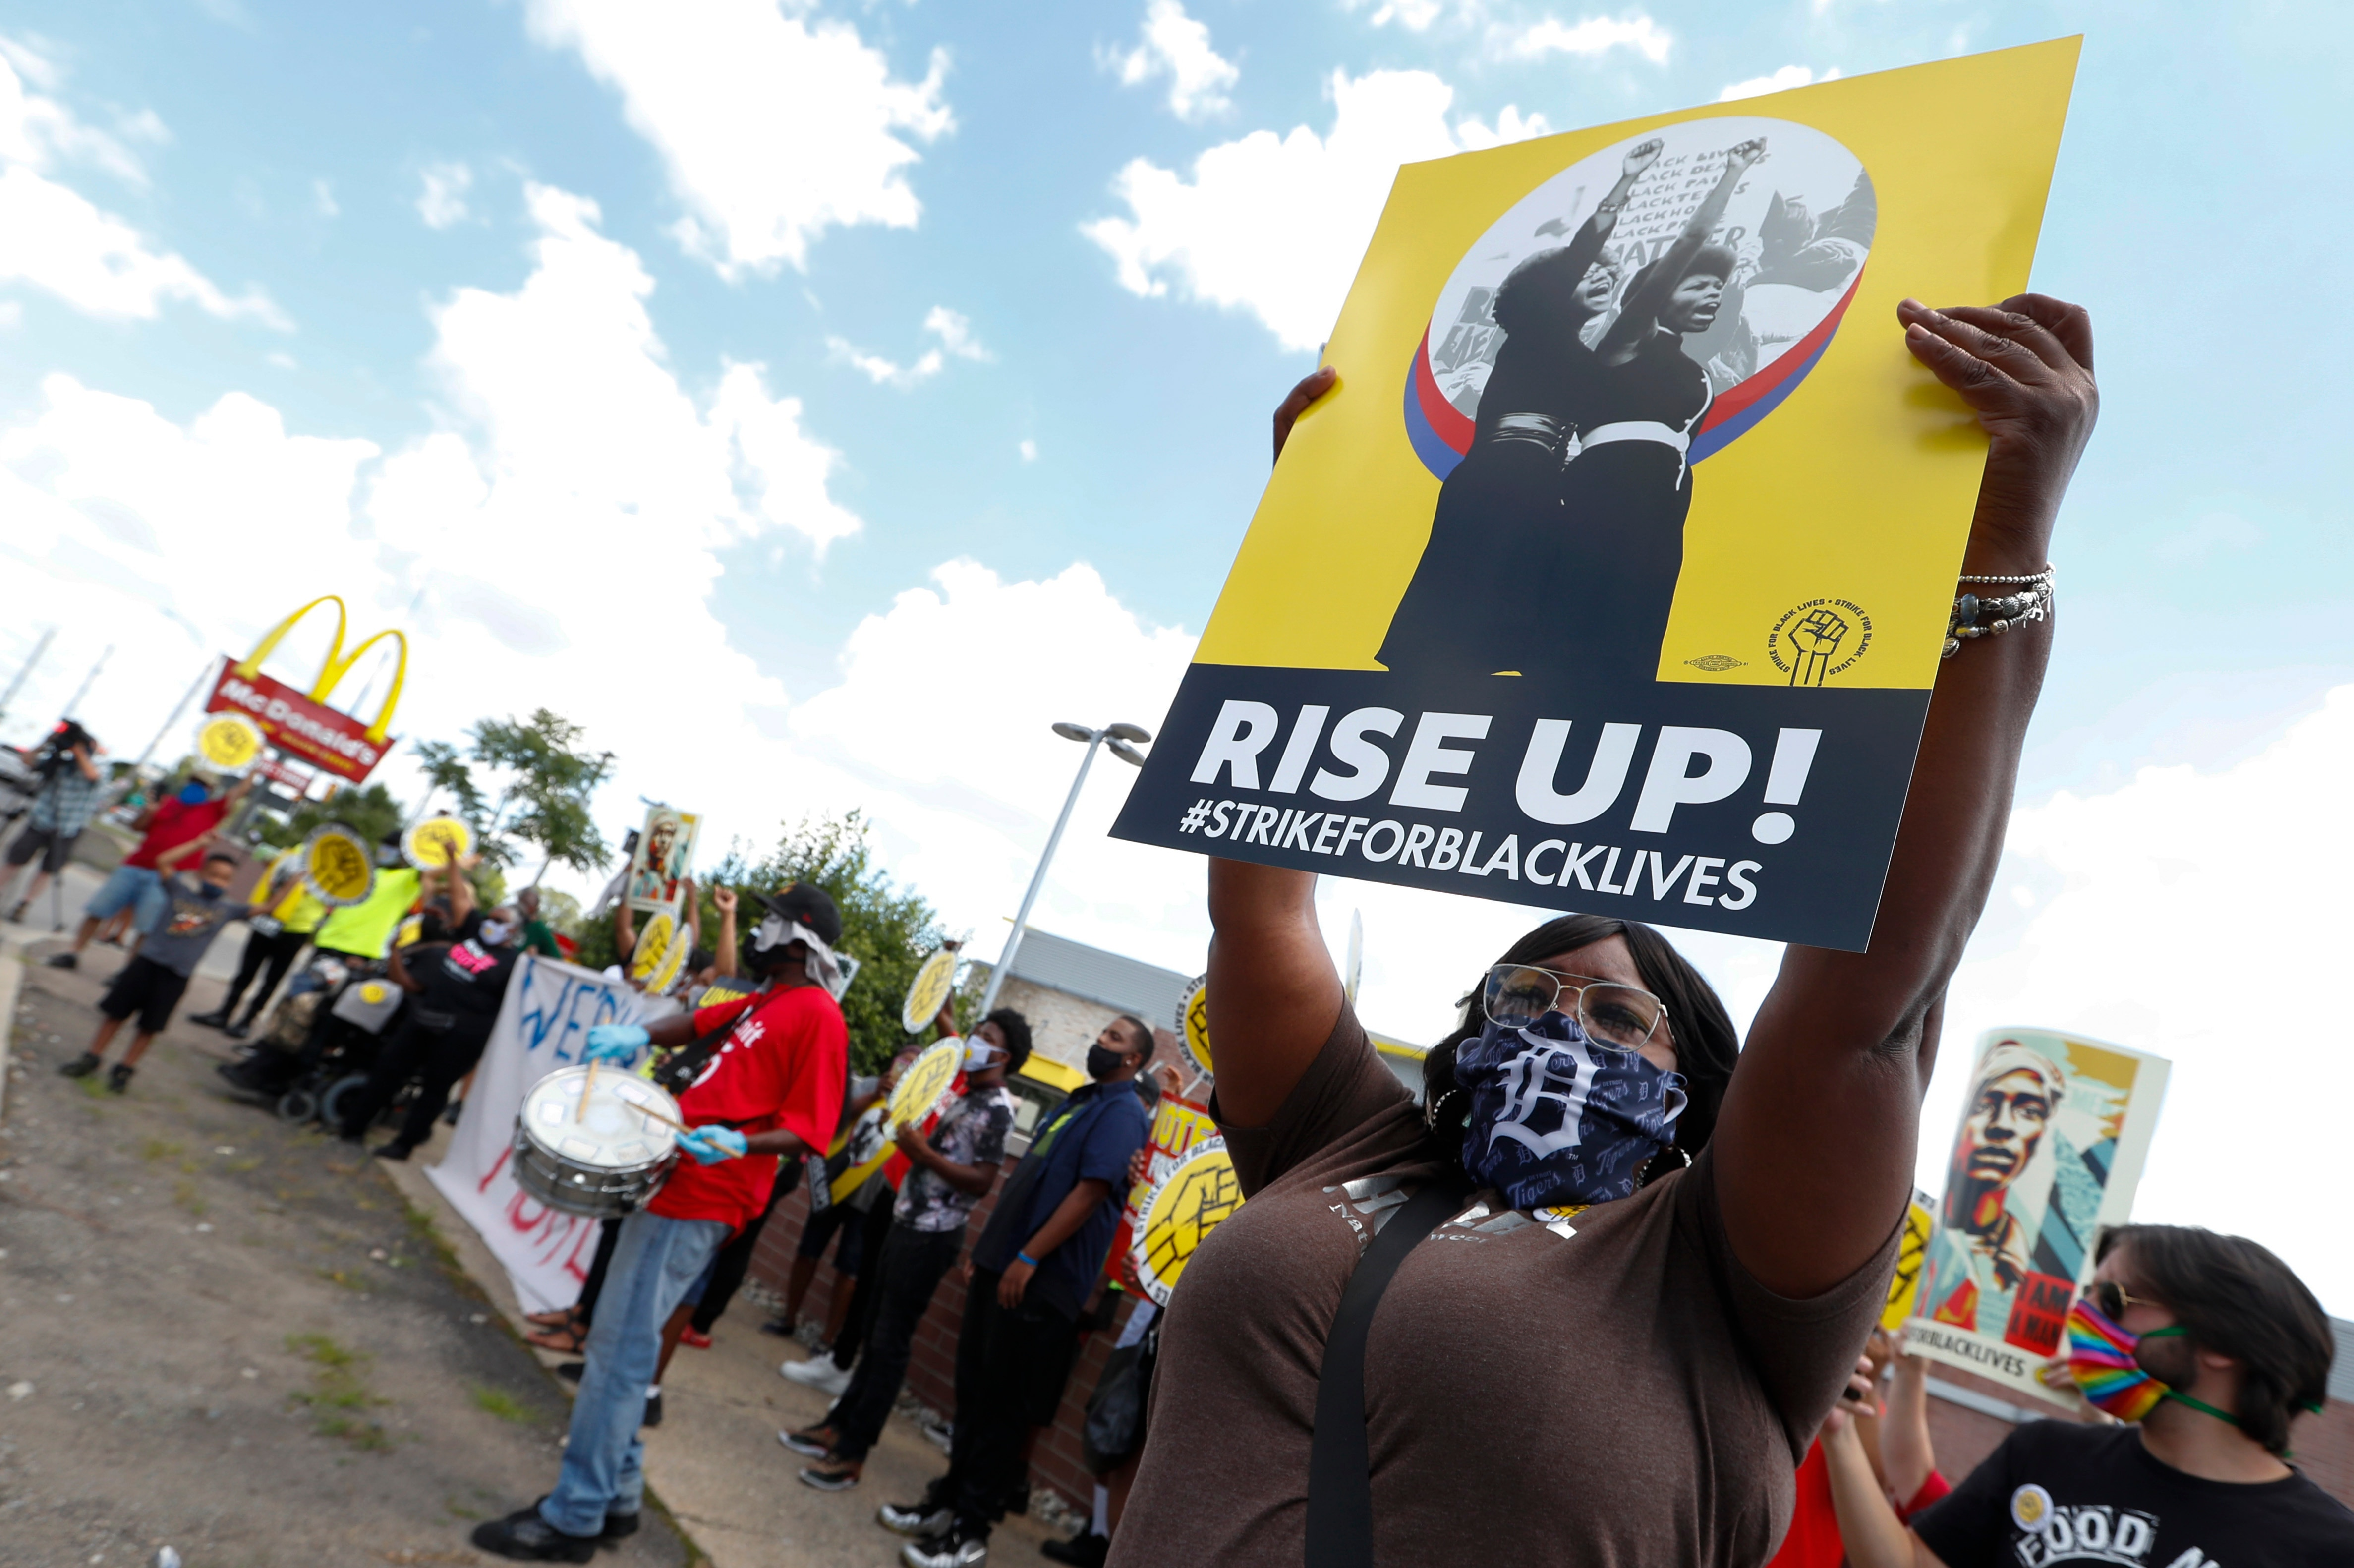 www.voanews.com: US Workers Protest Racial Inequality on Day of National Strike